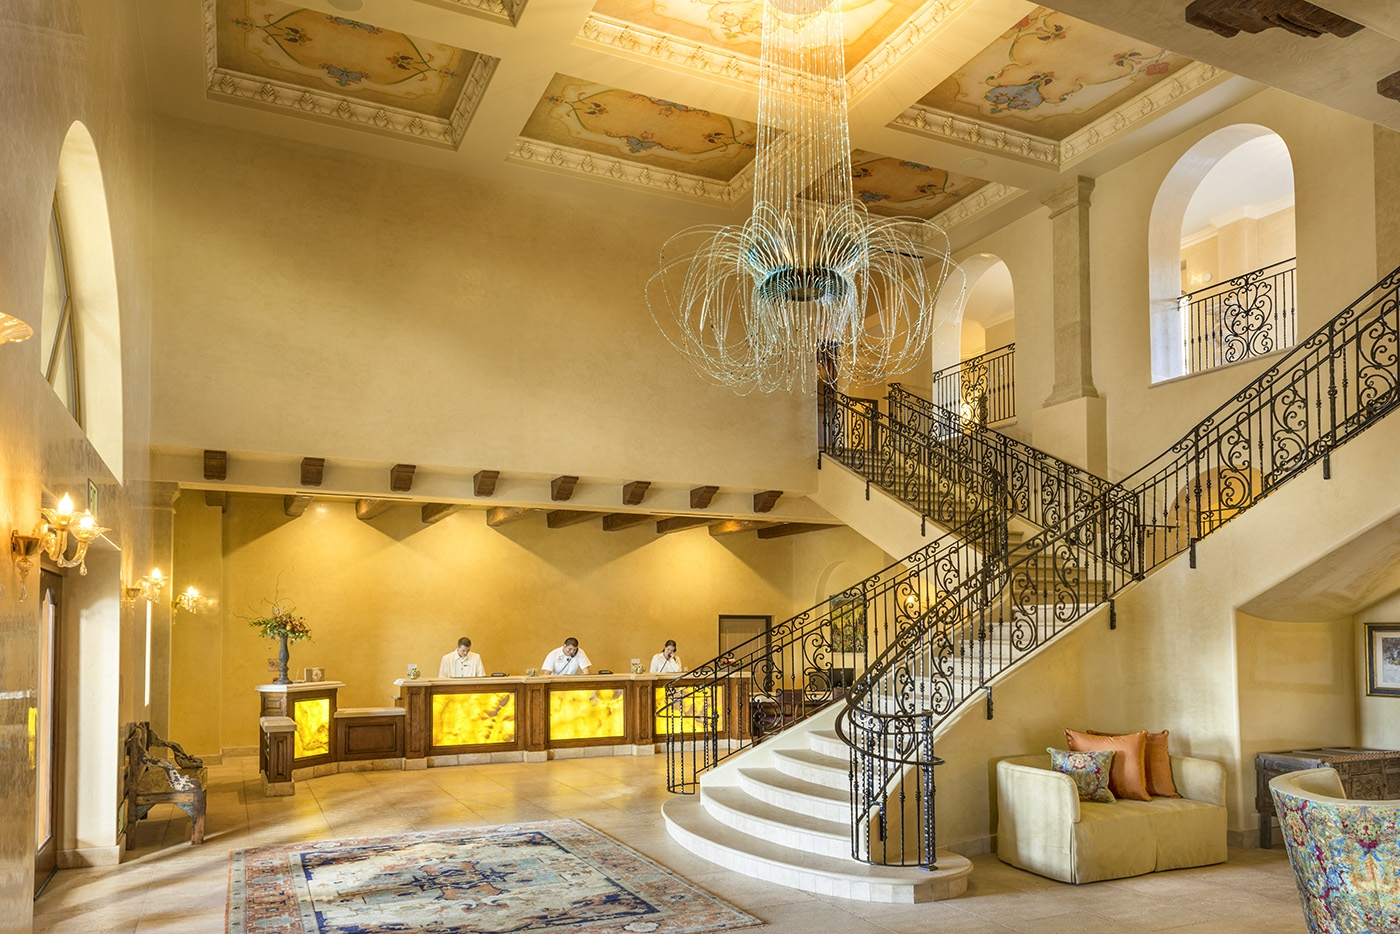 The resorts two story lobby with a center staircase and large ch